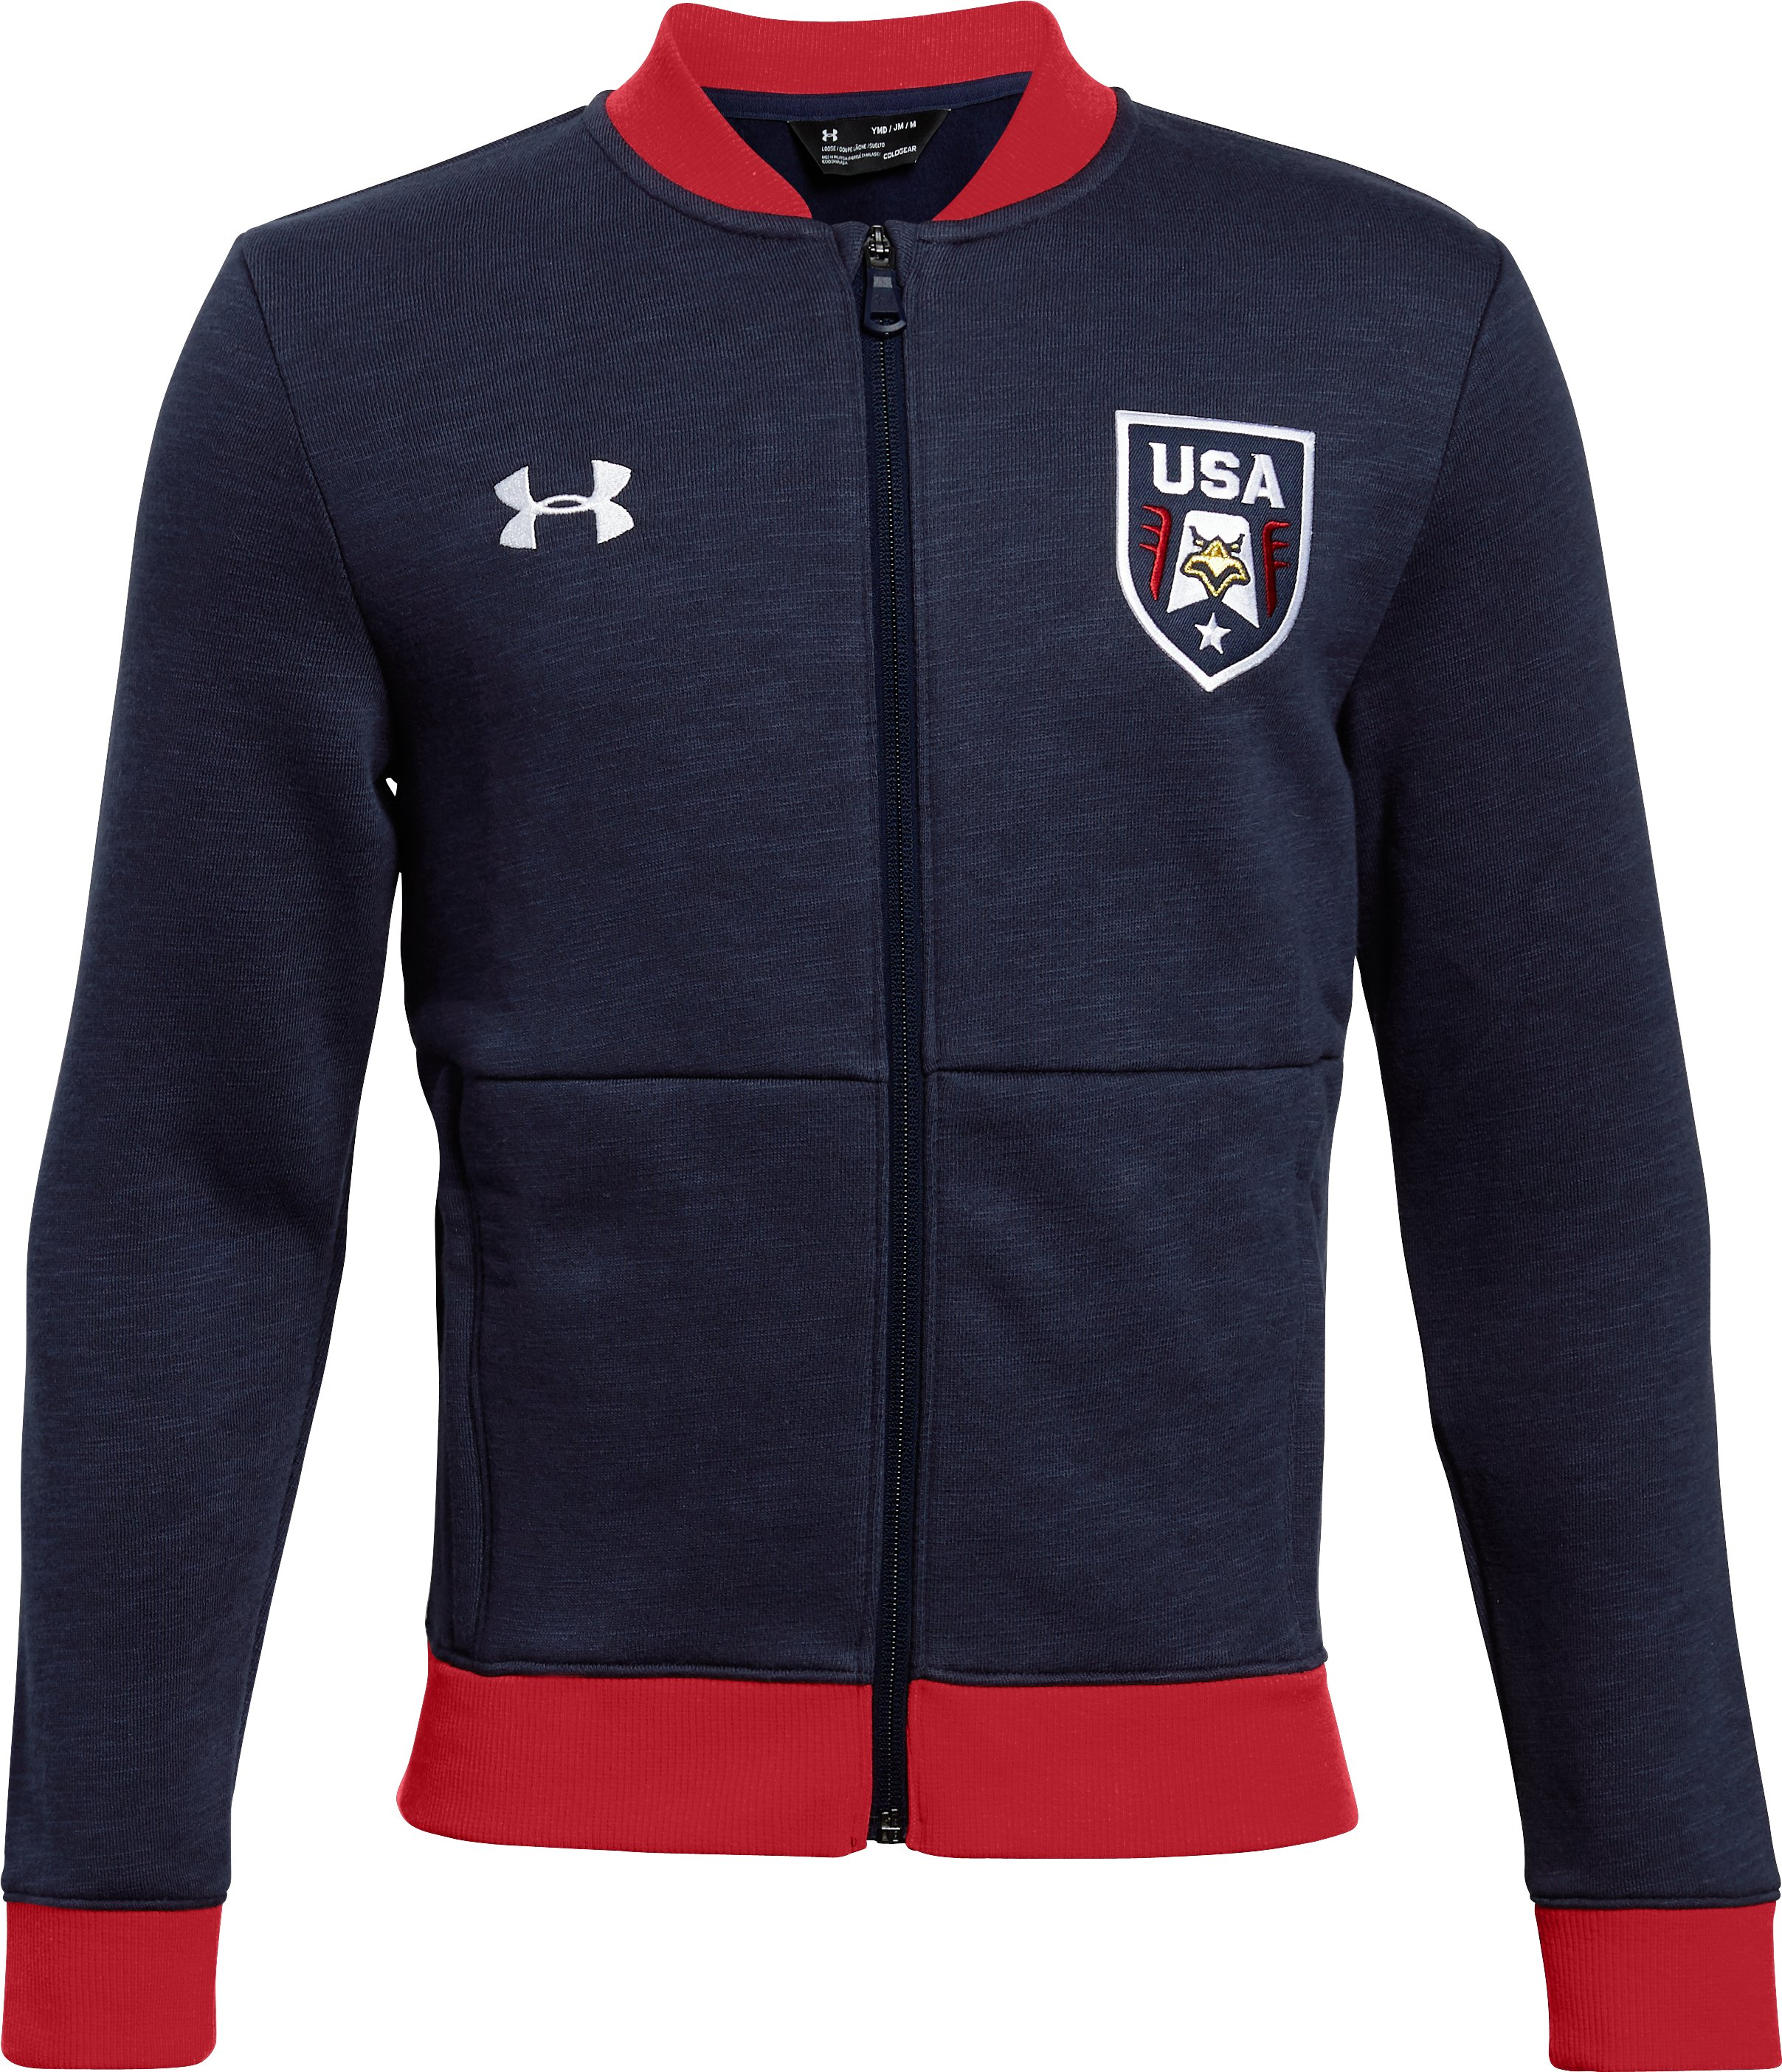 bomber jackets Boys' UA Stars & Stripes Bomber Jacket Great looking jacket...its a beautiful and comfortable Jacket!...I recommend these for mild cold weather.